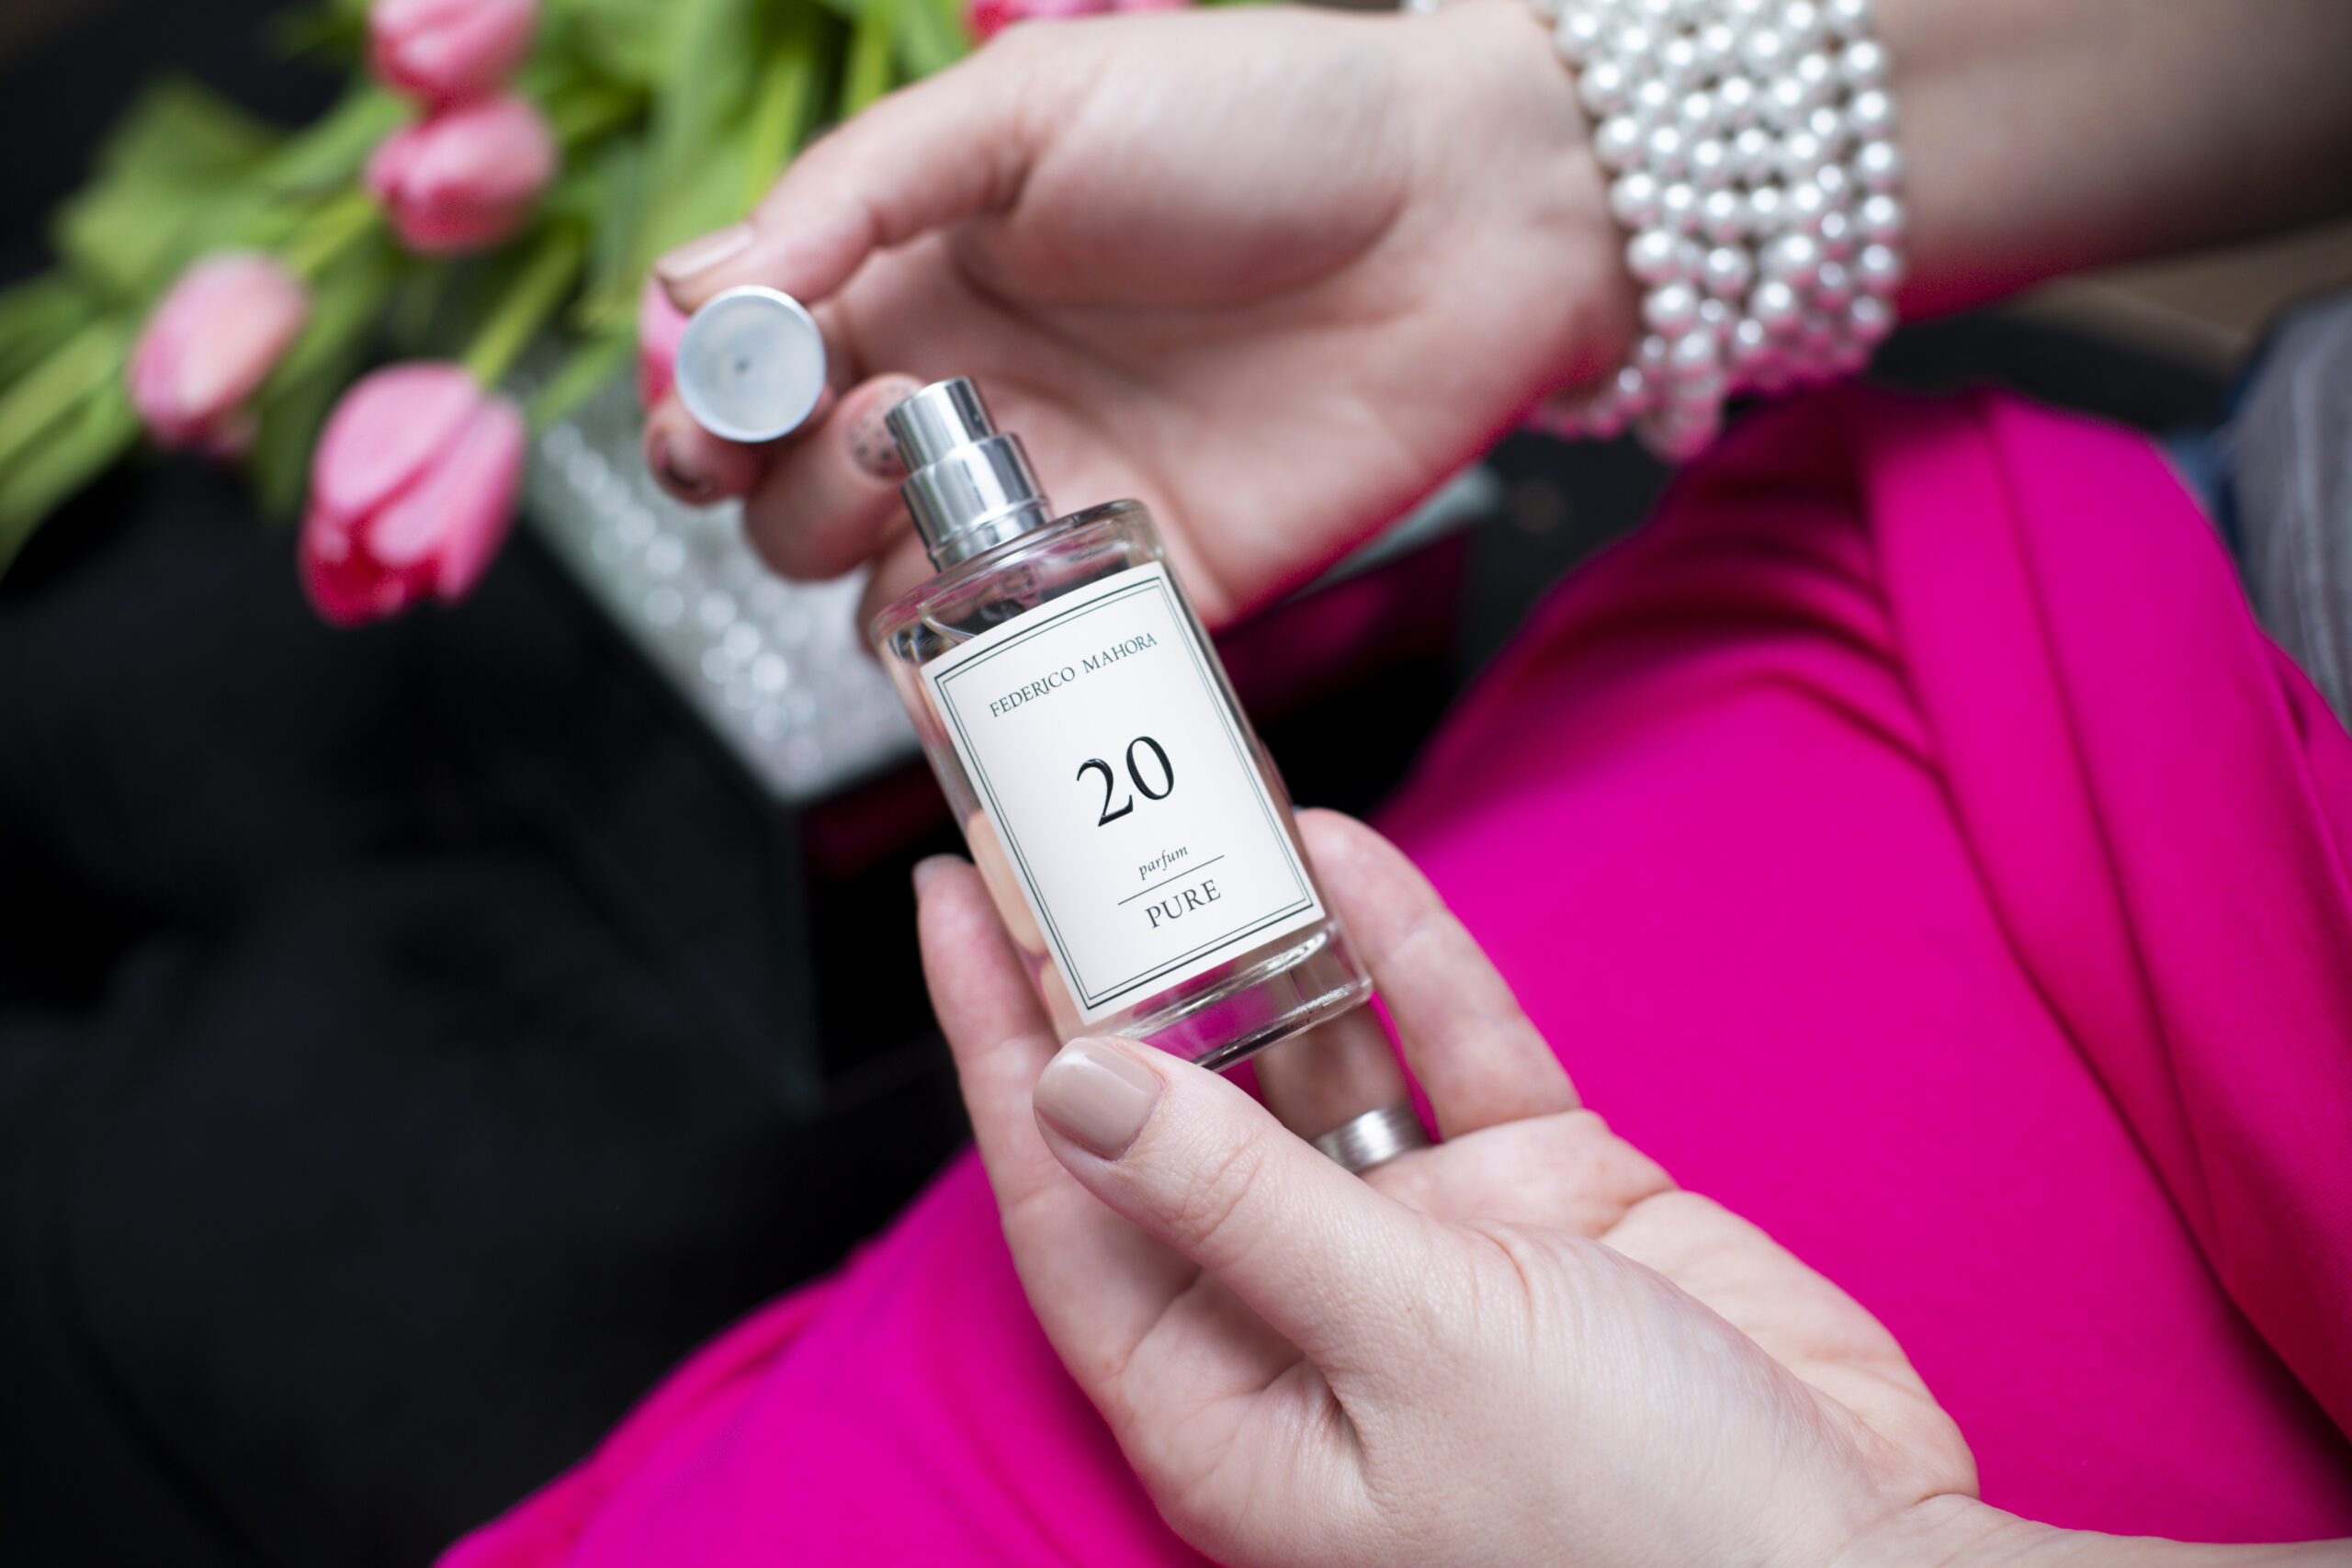 woman opening bottle of pure fm perfume 20